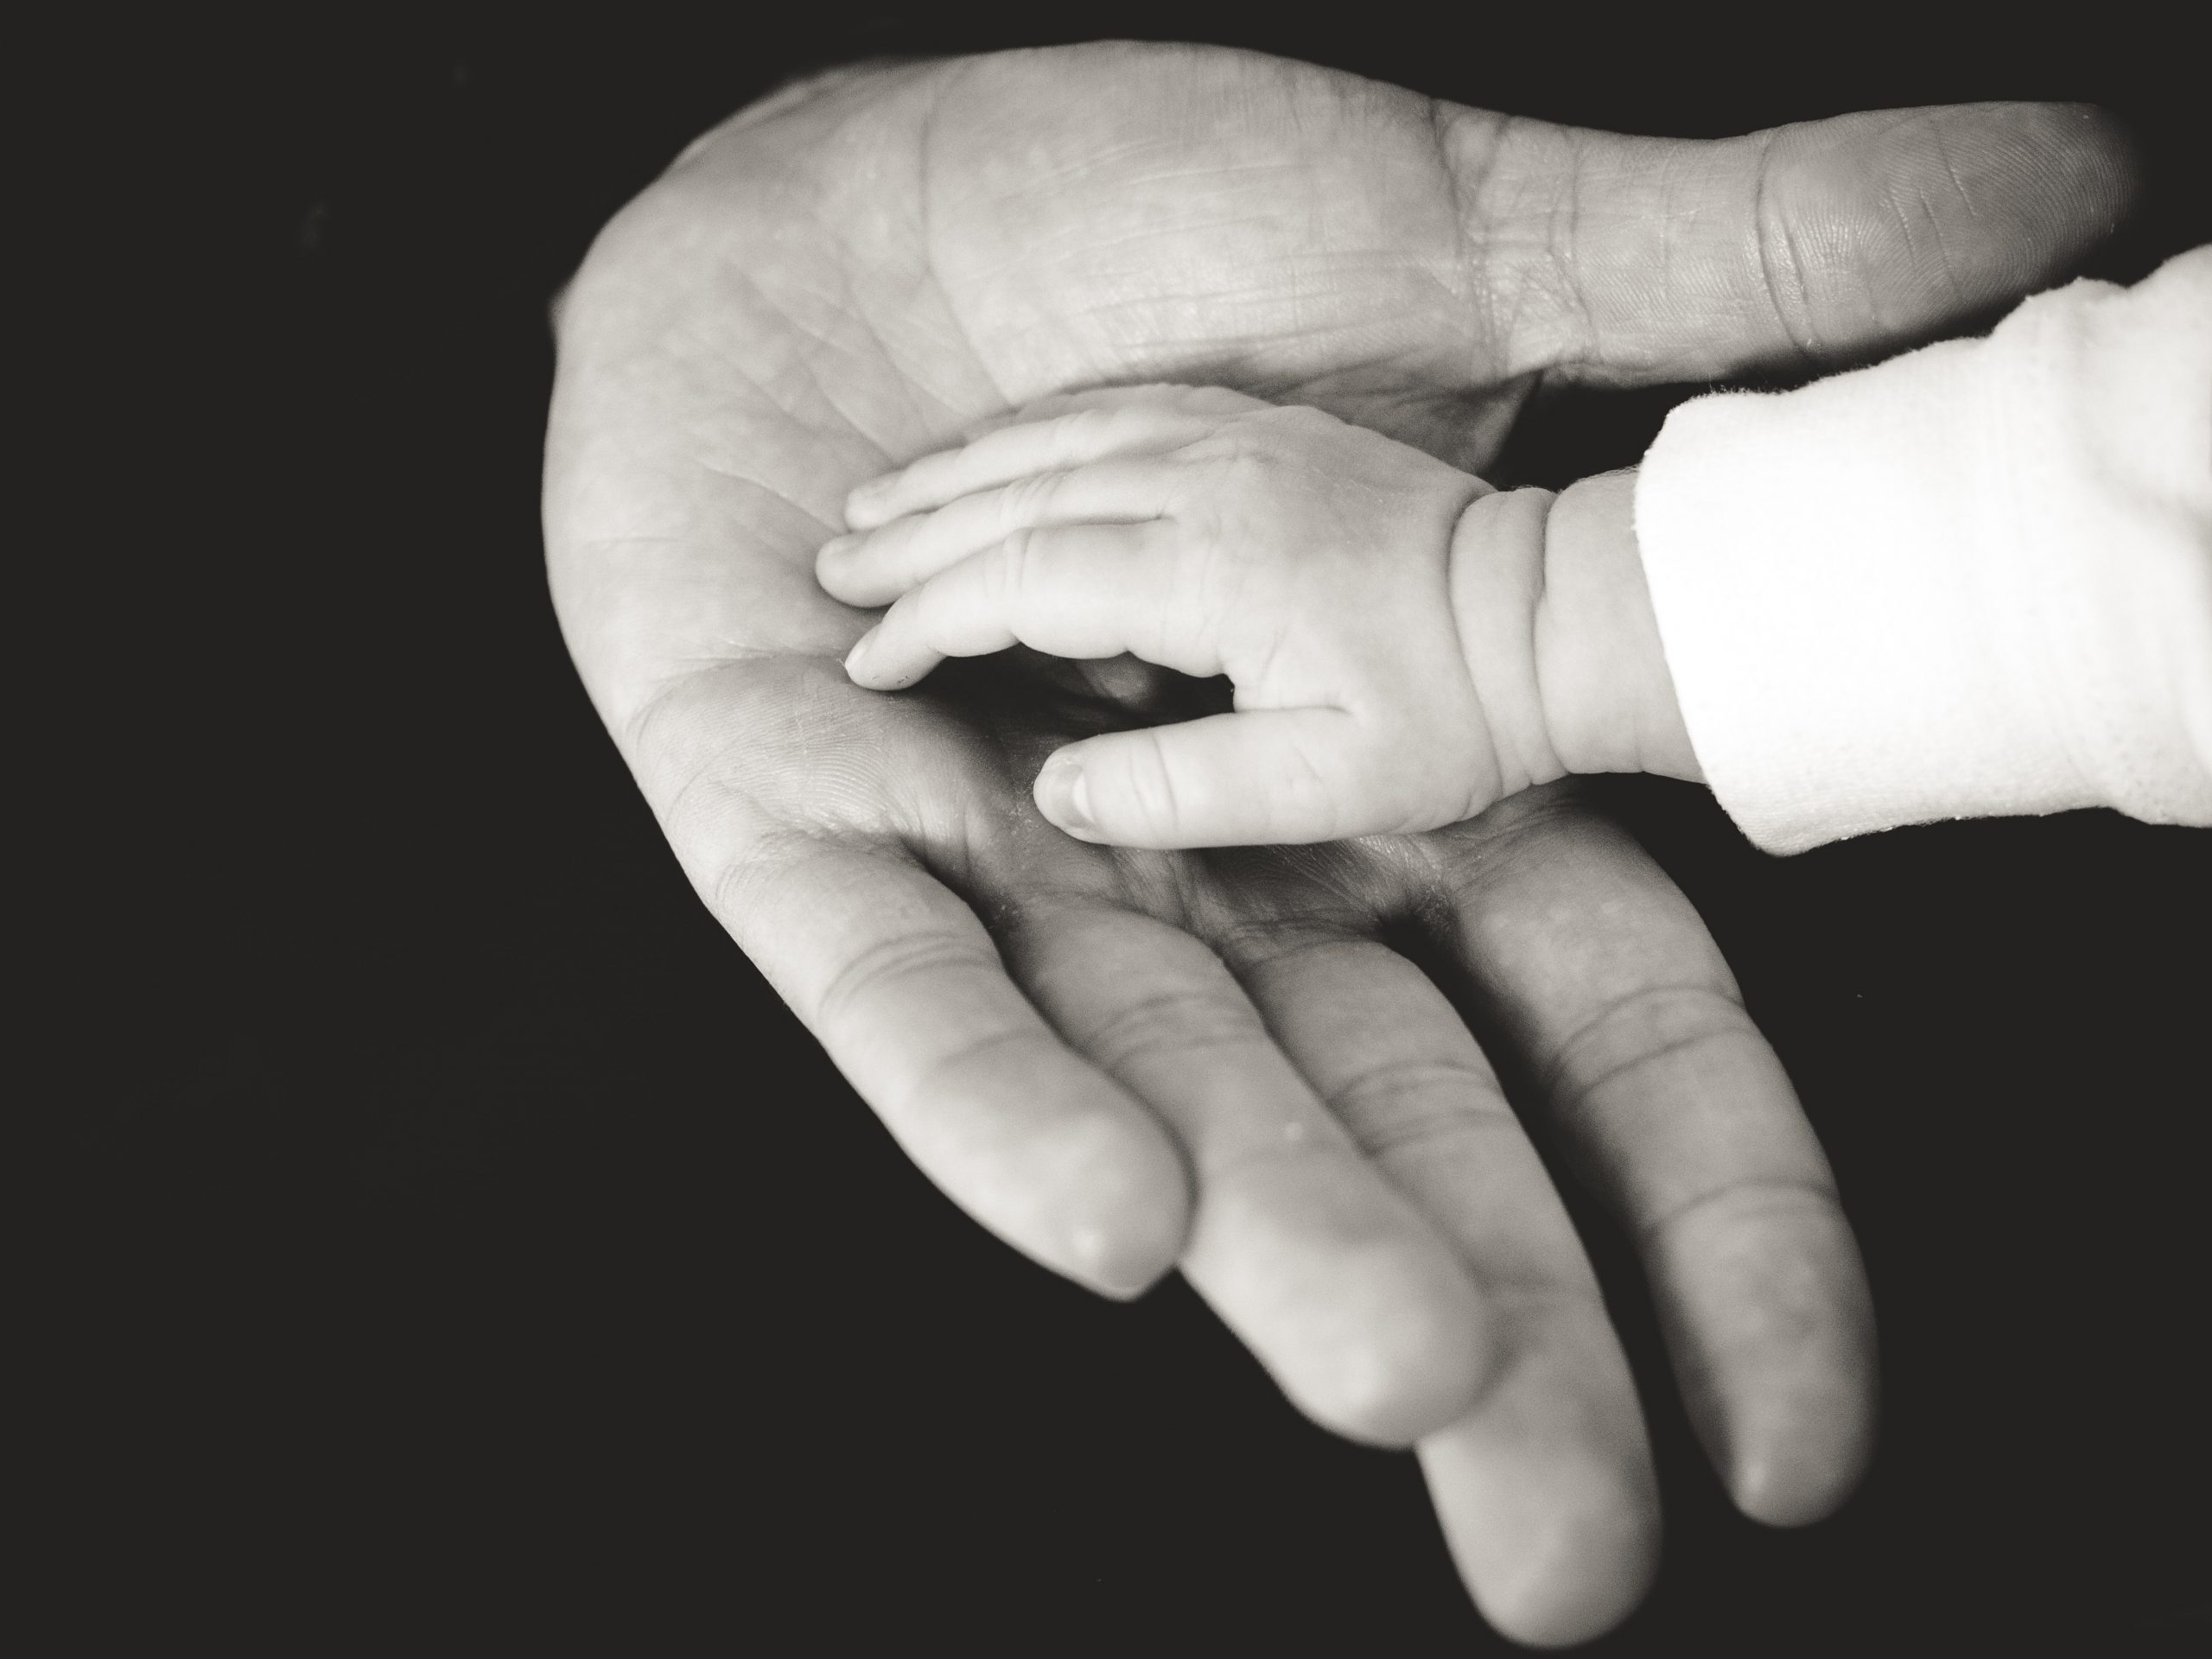 Small child's hand in adult's open hand